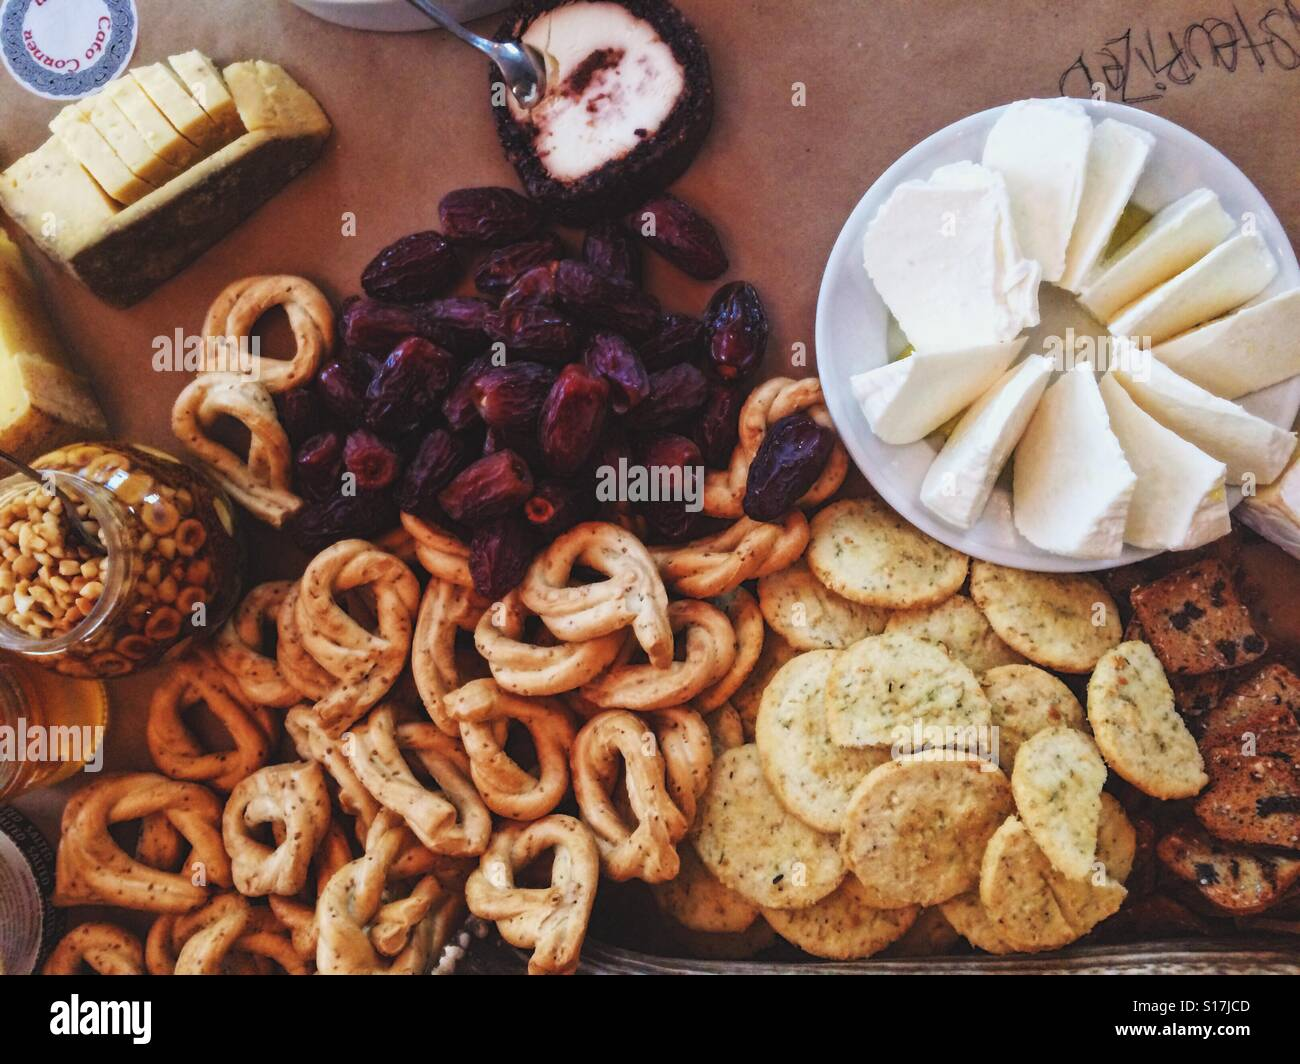 Mediterranean Christmas party spread - Stock Image